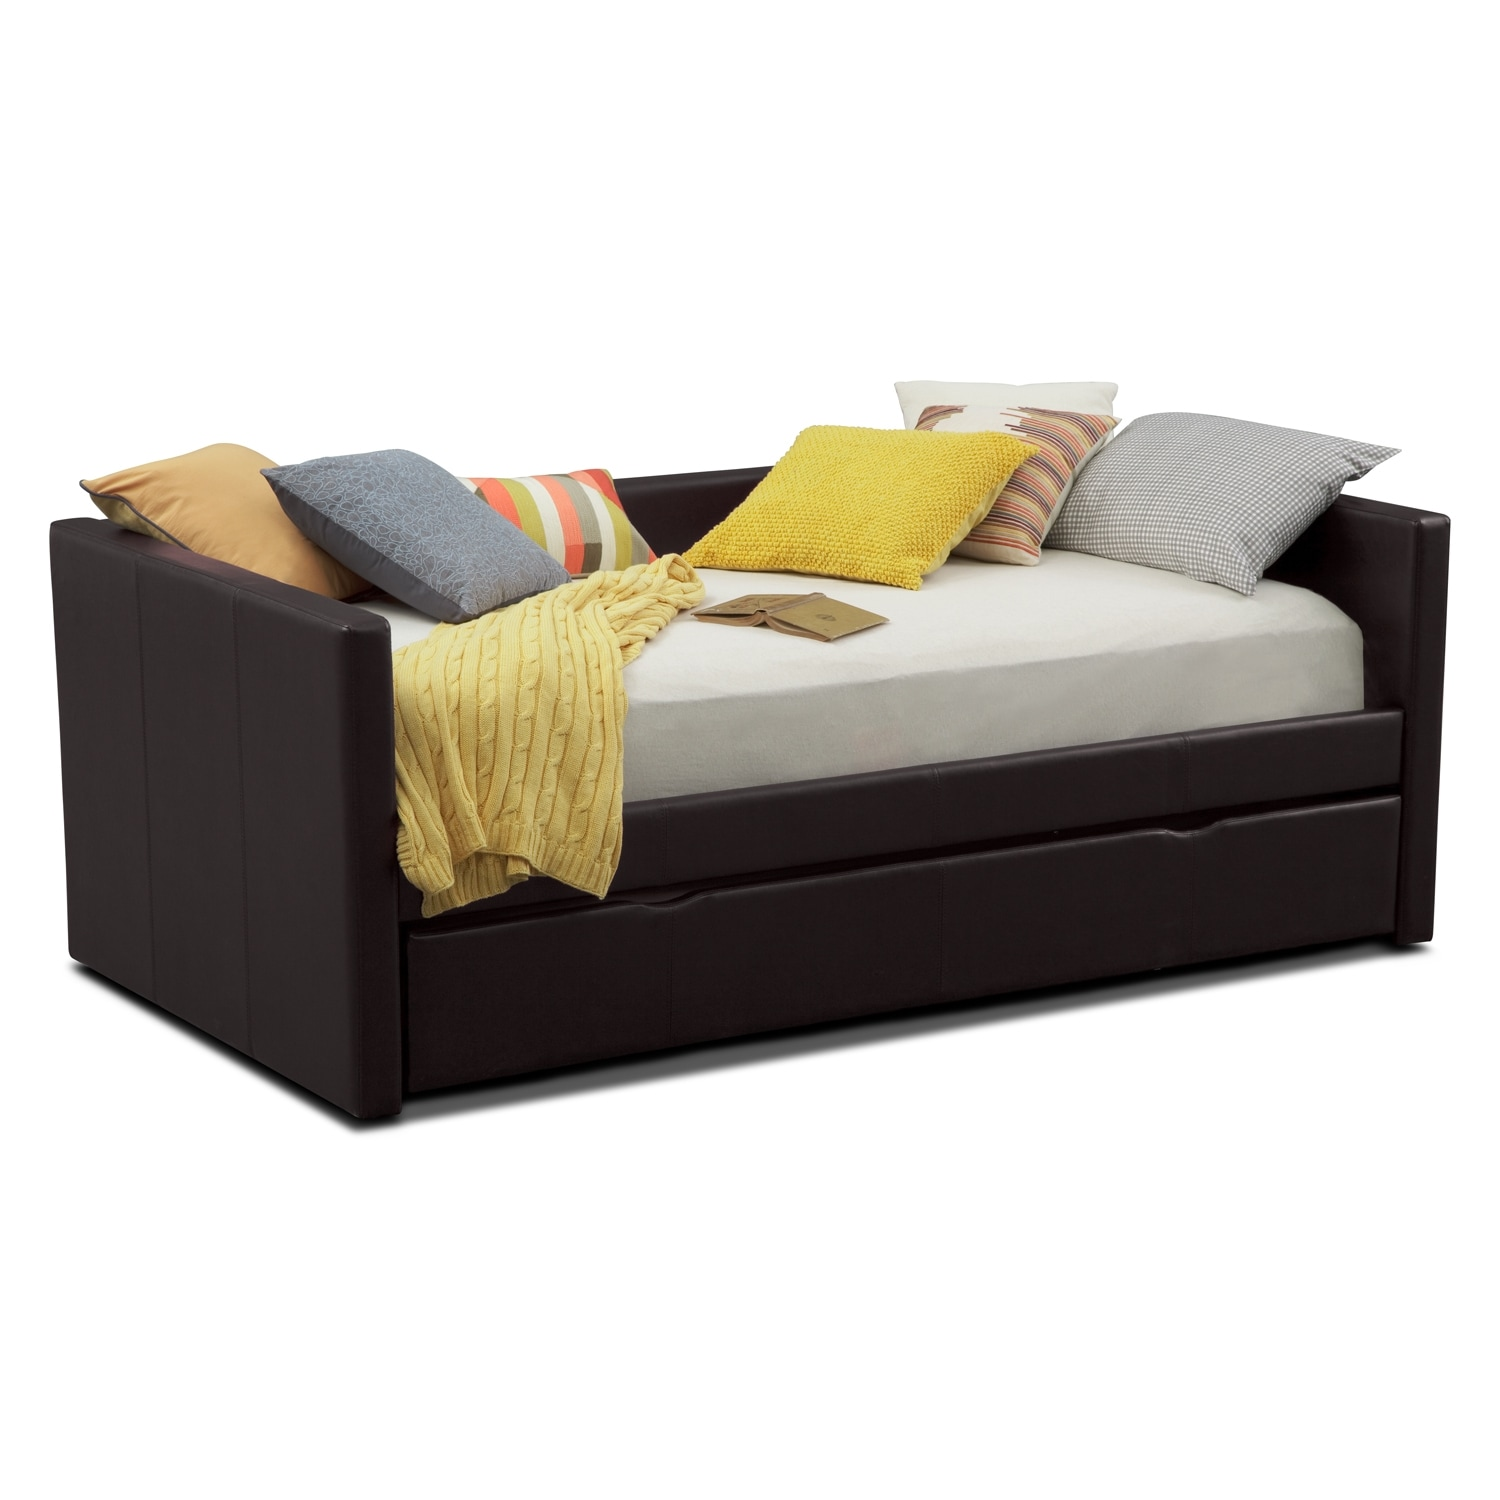 Carey twin daybed with trundle brown value city furniture for Beds with trundle